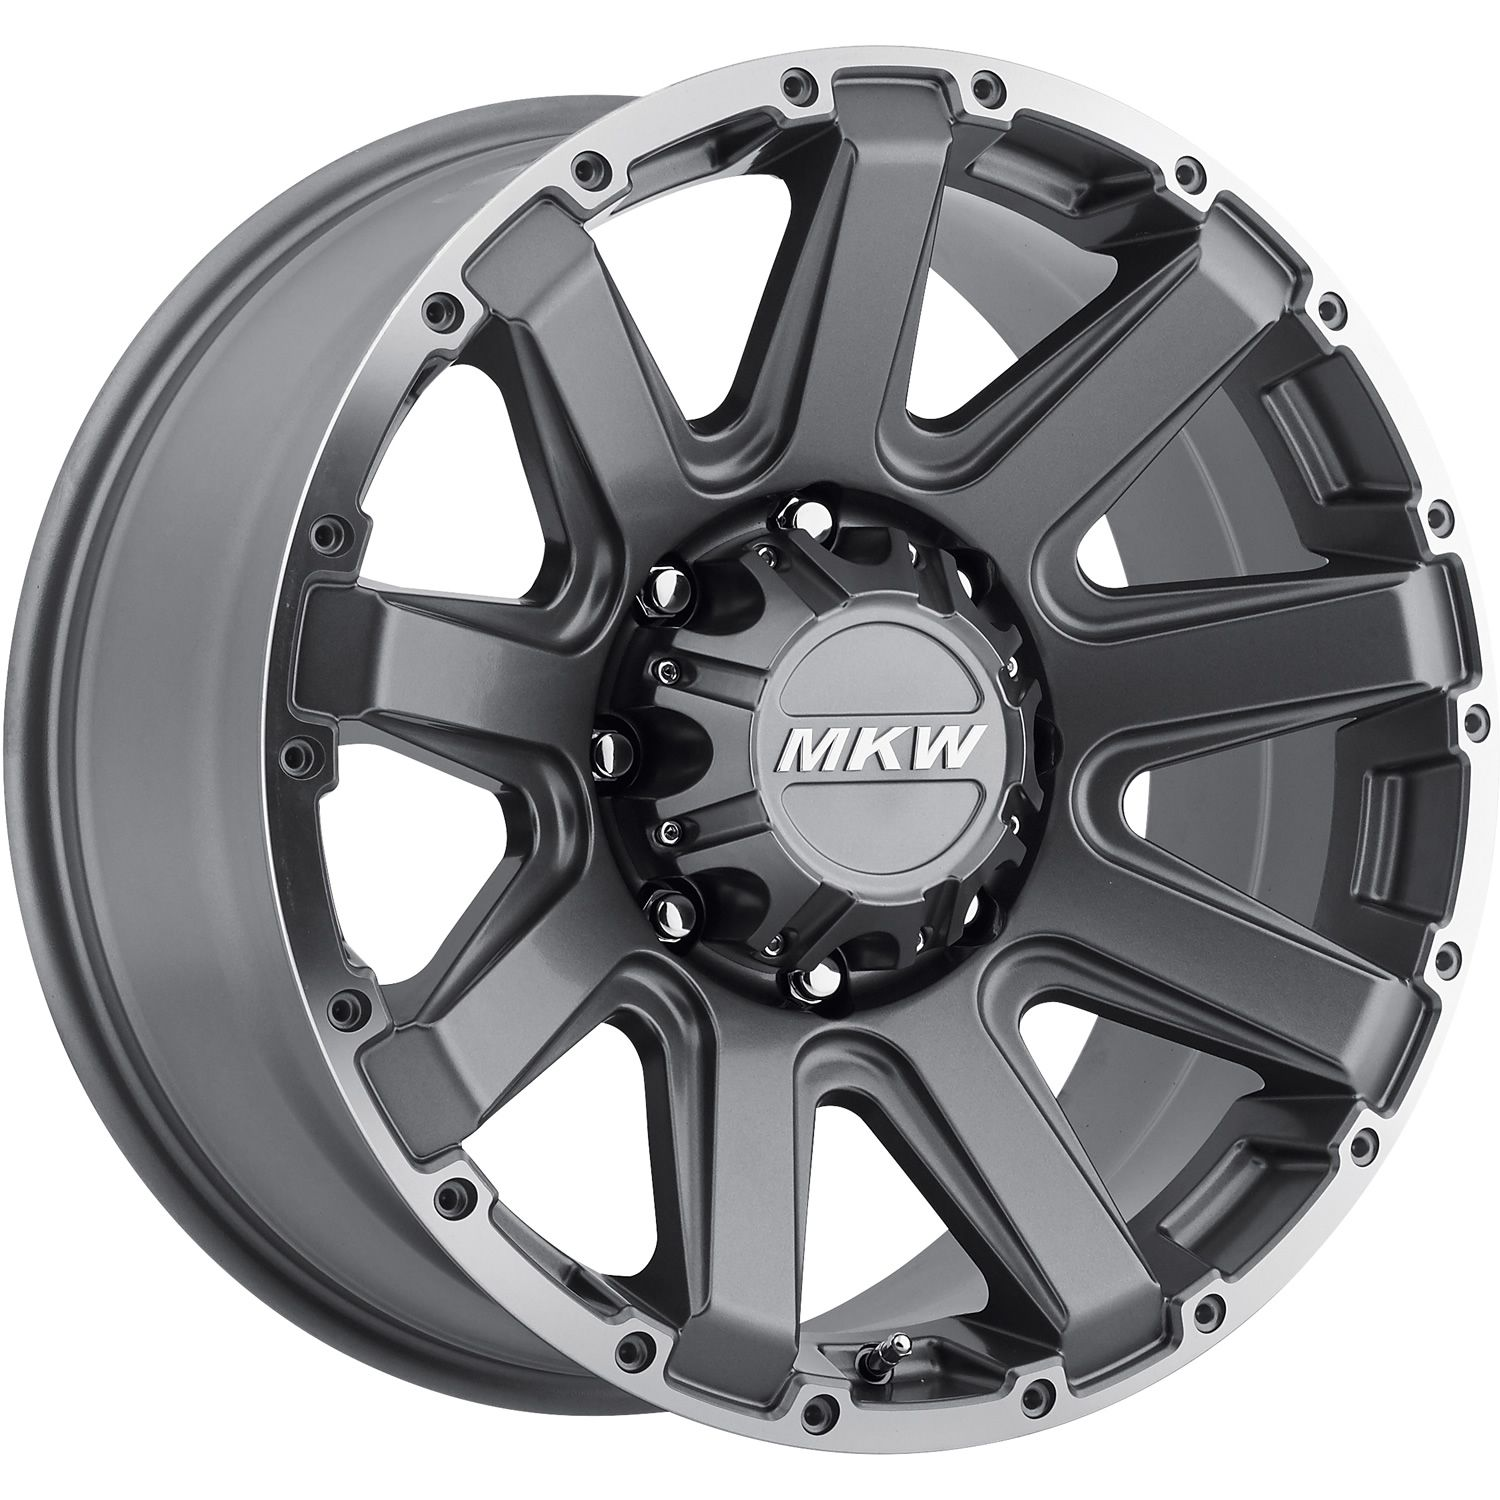 20x9 Gray MKW froad M94 6x5 5 10 Wheels 35X12 5X20 Tires